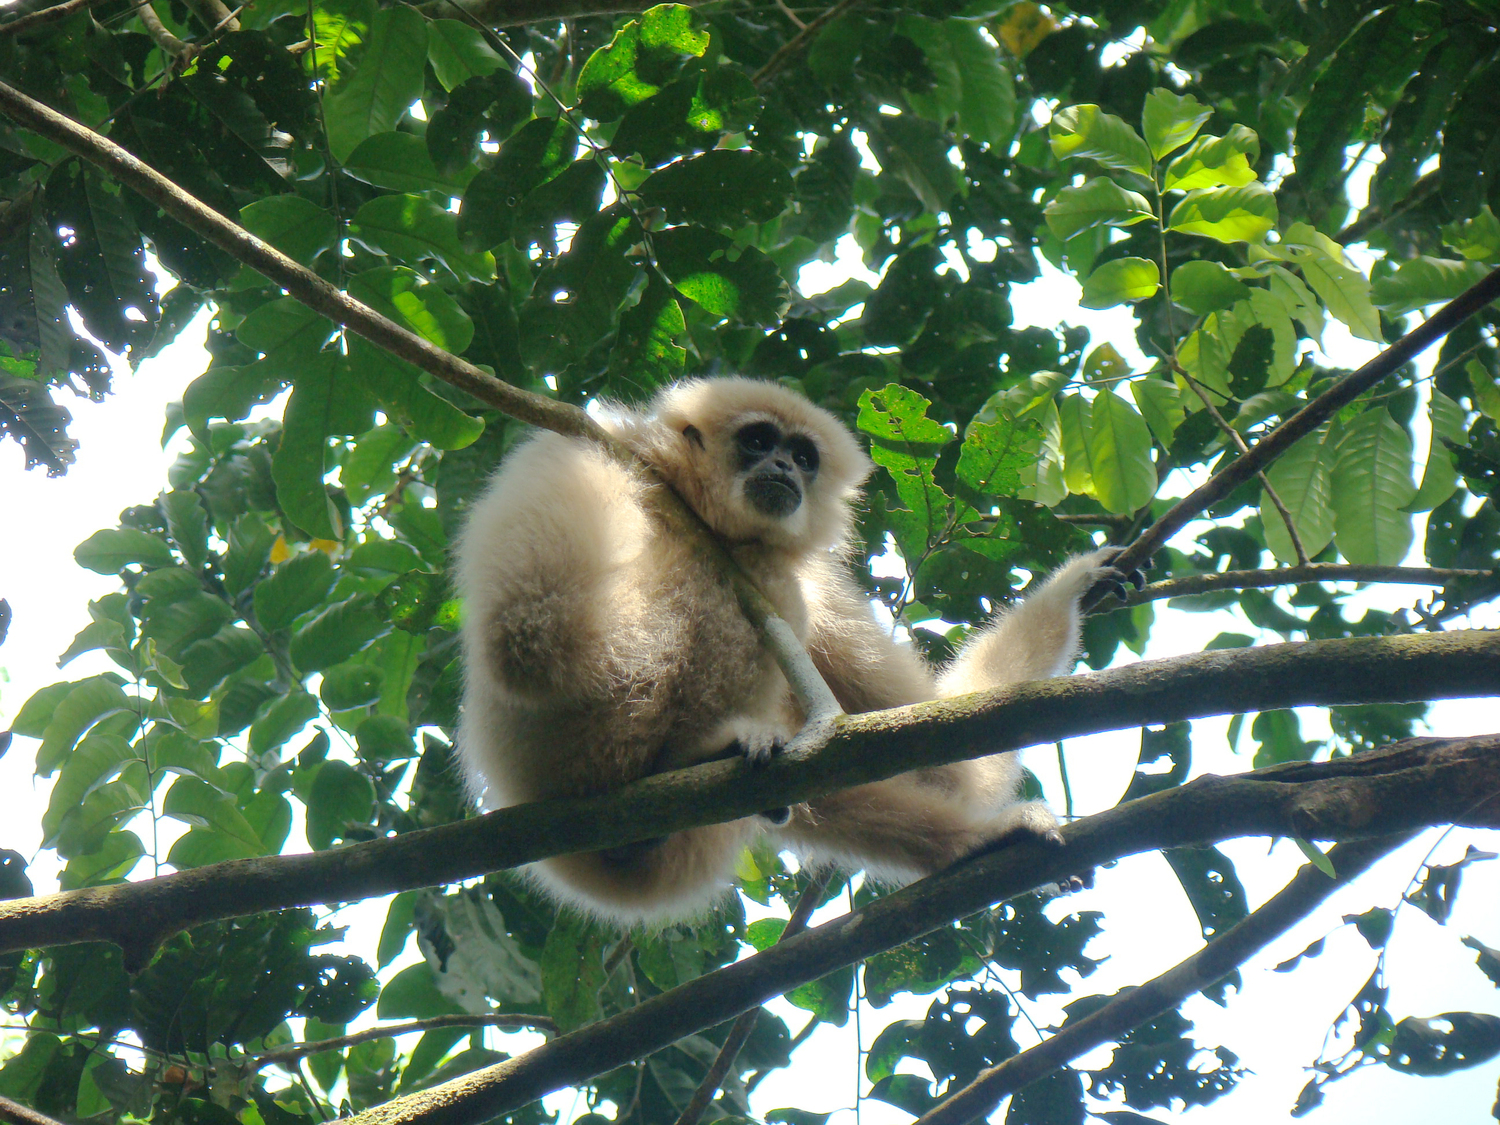 Gibbons such as this white-handed gibbon (Hylobates lar) are considered the classic pair living primates. They strengthen their pair bond through characteristic duet calls.